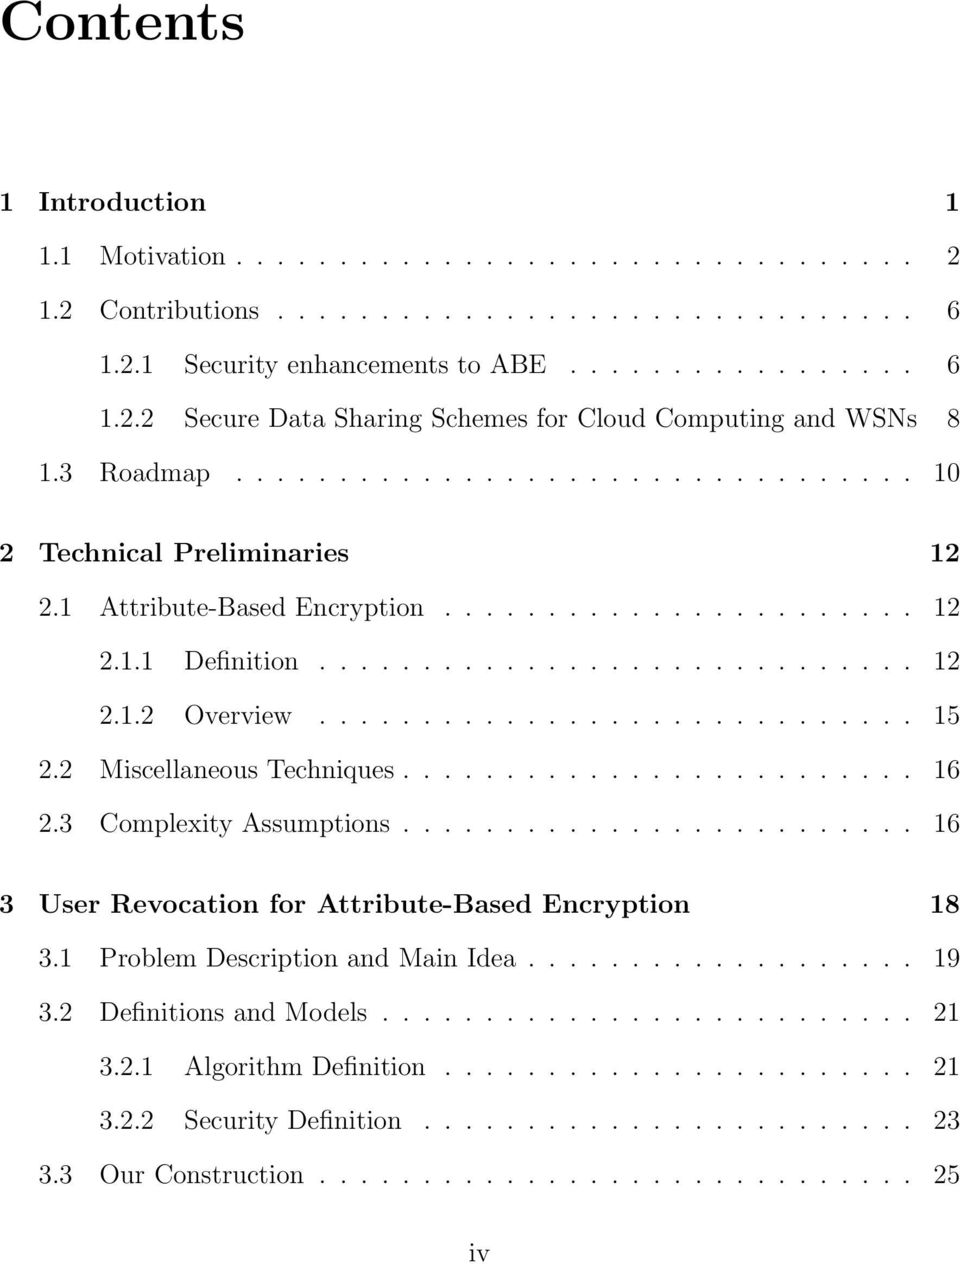 ............................ 15 2.2 Miscellaneous Techniques......................... 16 2.3 Complexity Assumptions......................... 16 3 User Revocation for Attribute-Based Encryption 18 3.